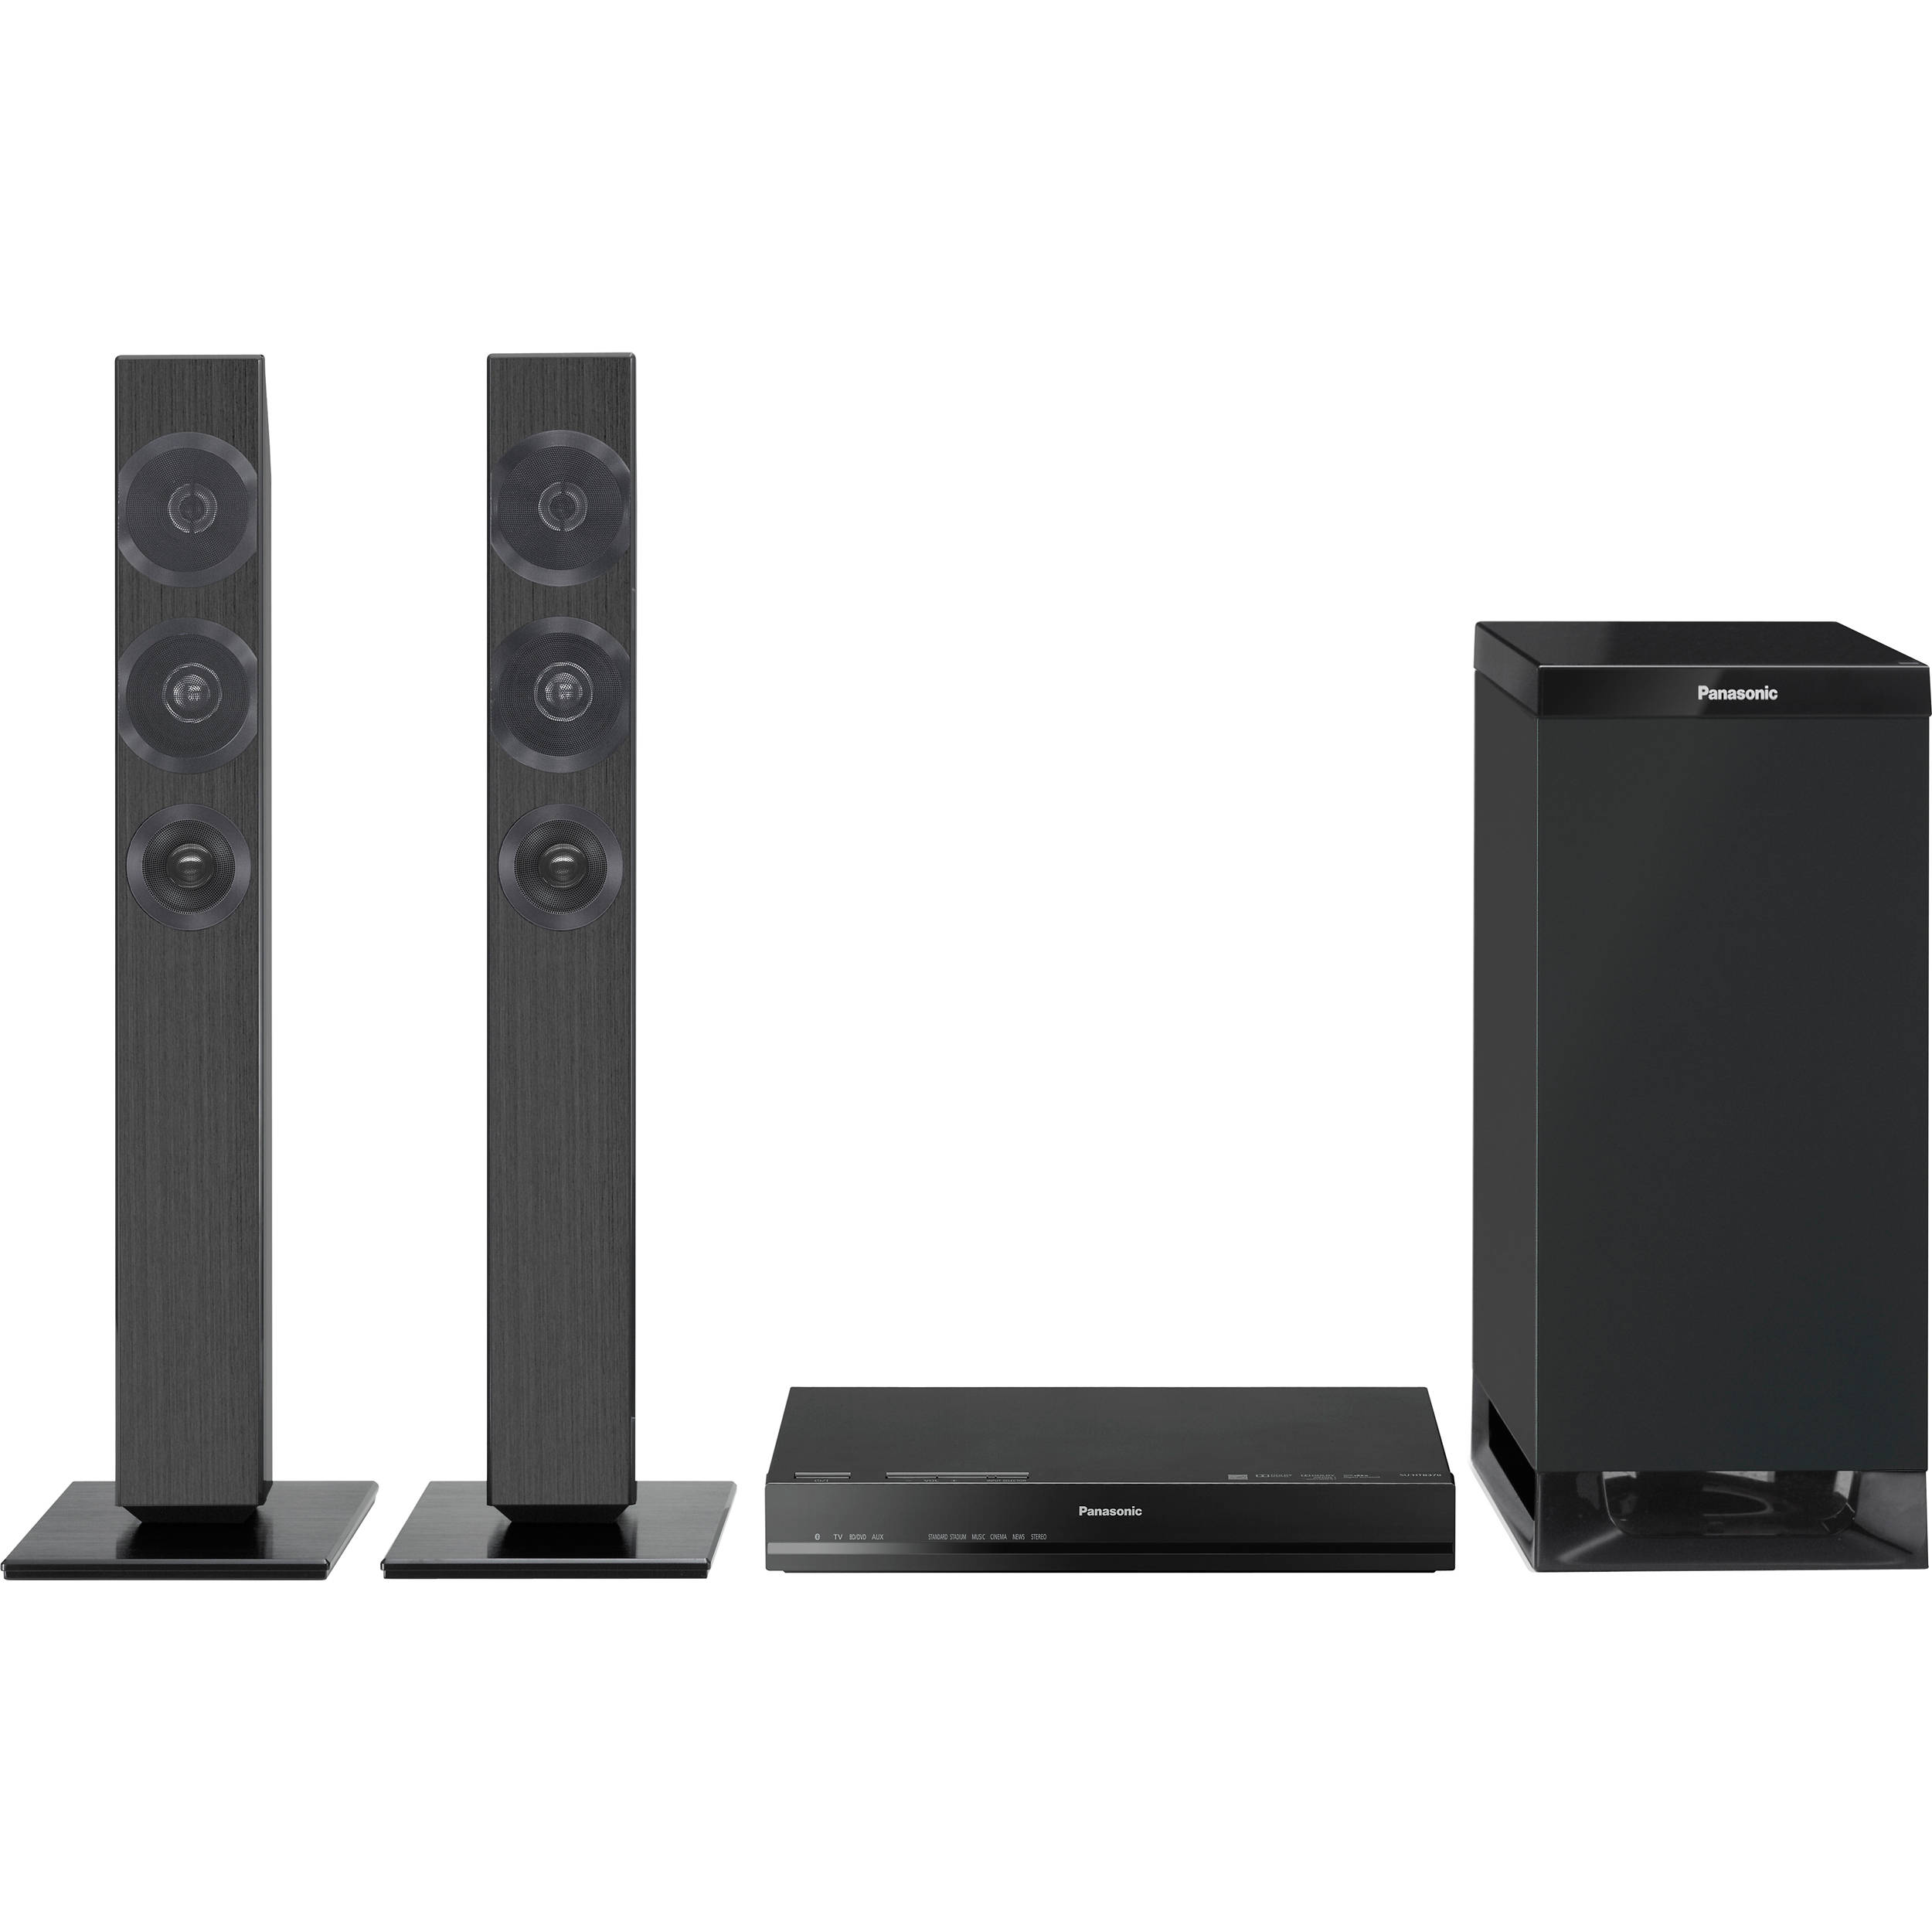 panasonic tv speakers. panasonic sc-htb370 240w home theater system sound bar with subwoofer tv speakers